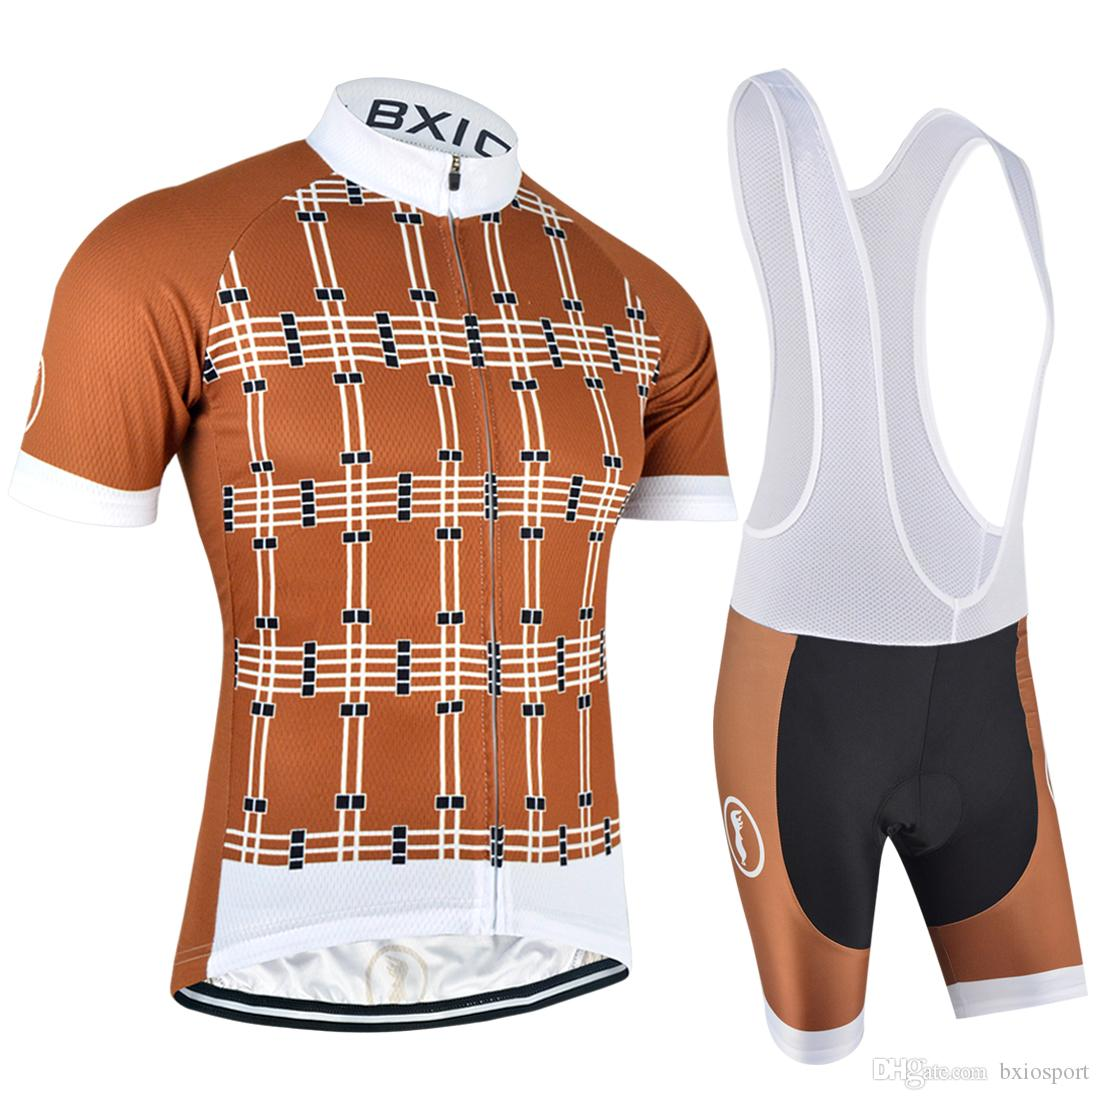 1949af794 2017 BXIO Brand Cycling Jerseys New Arrival Lattice Style Bike ...